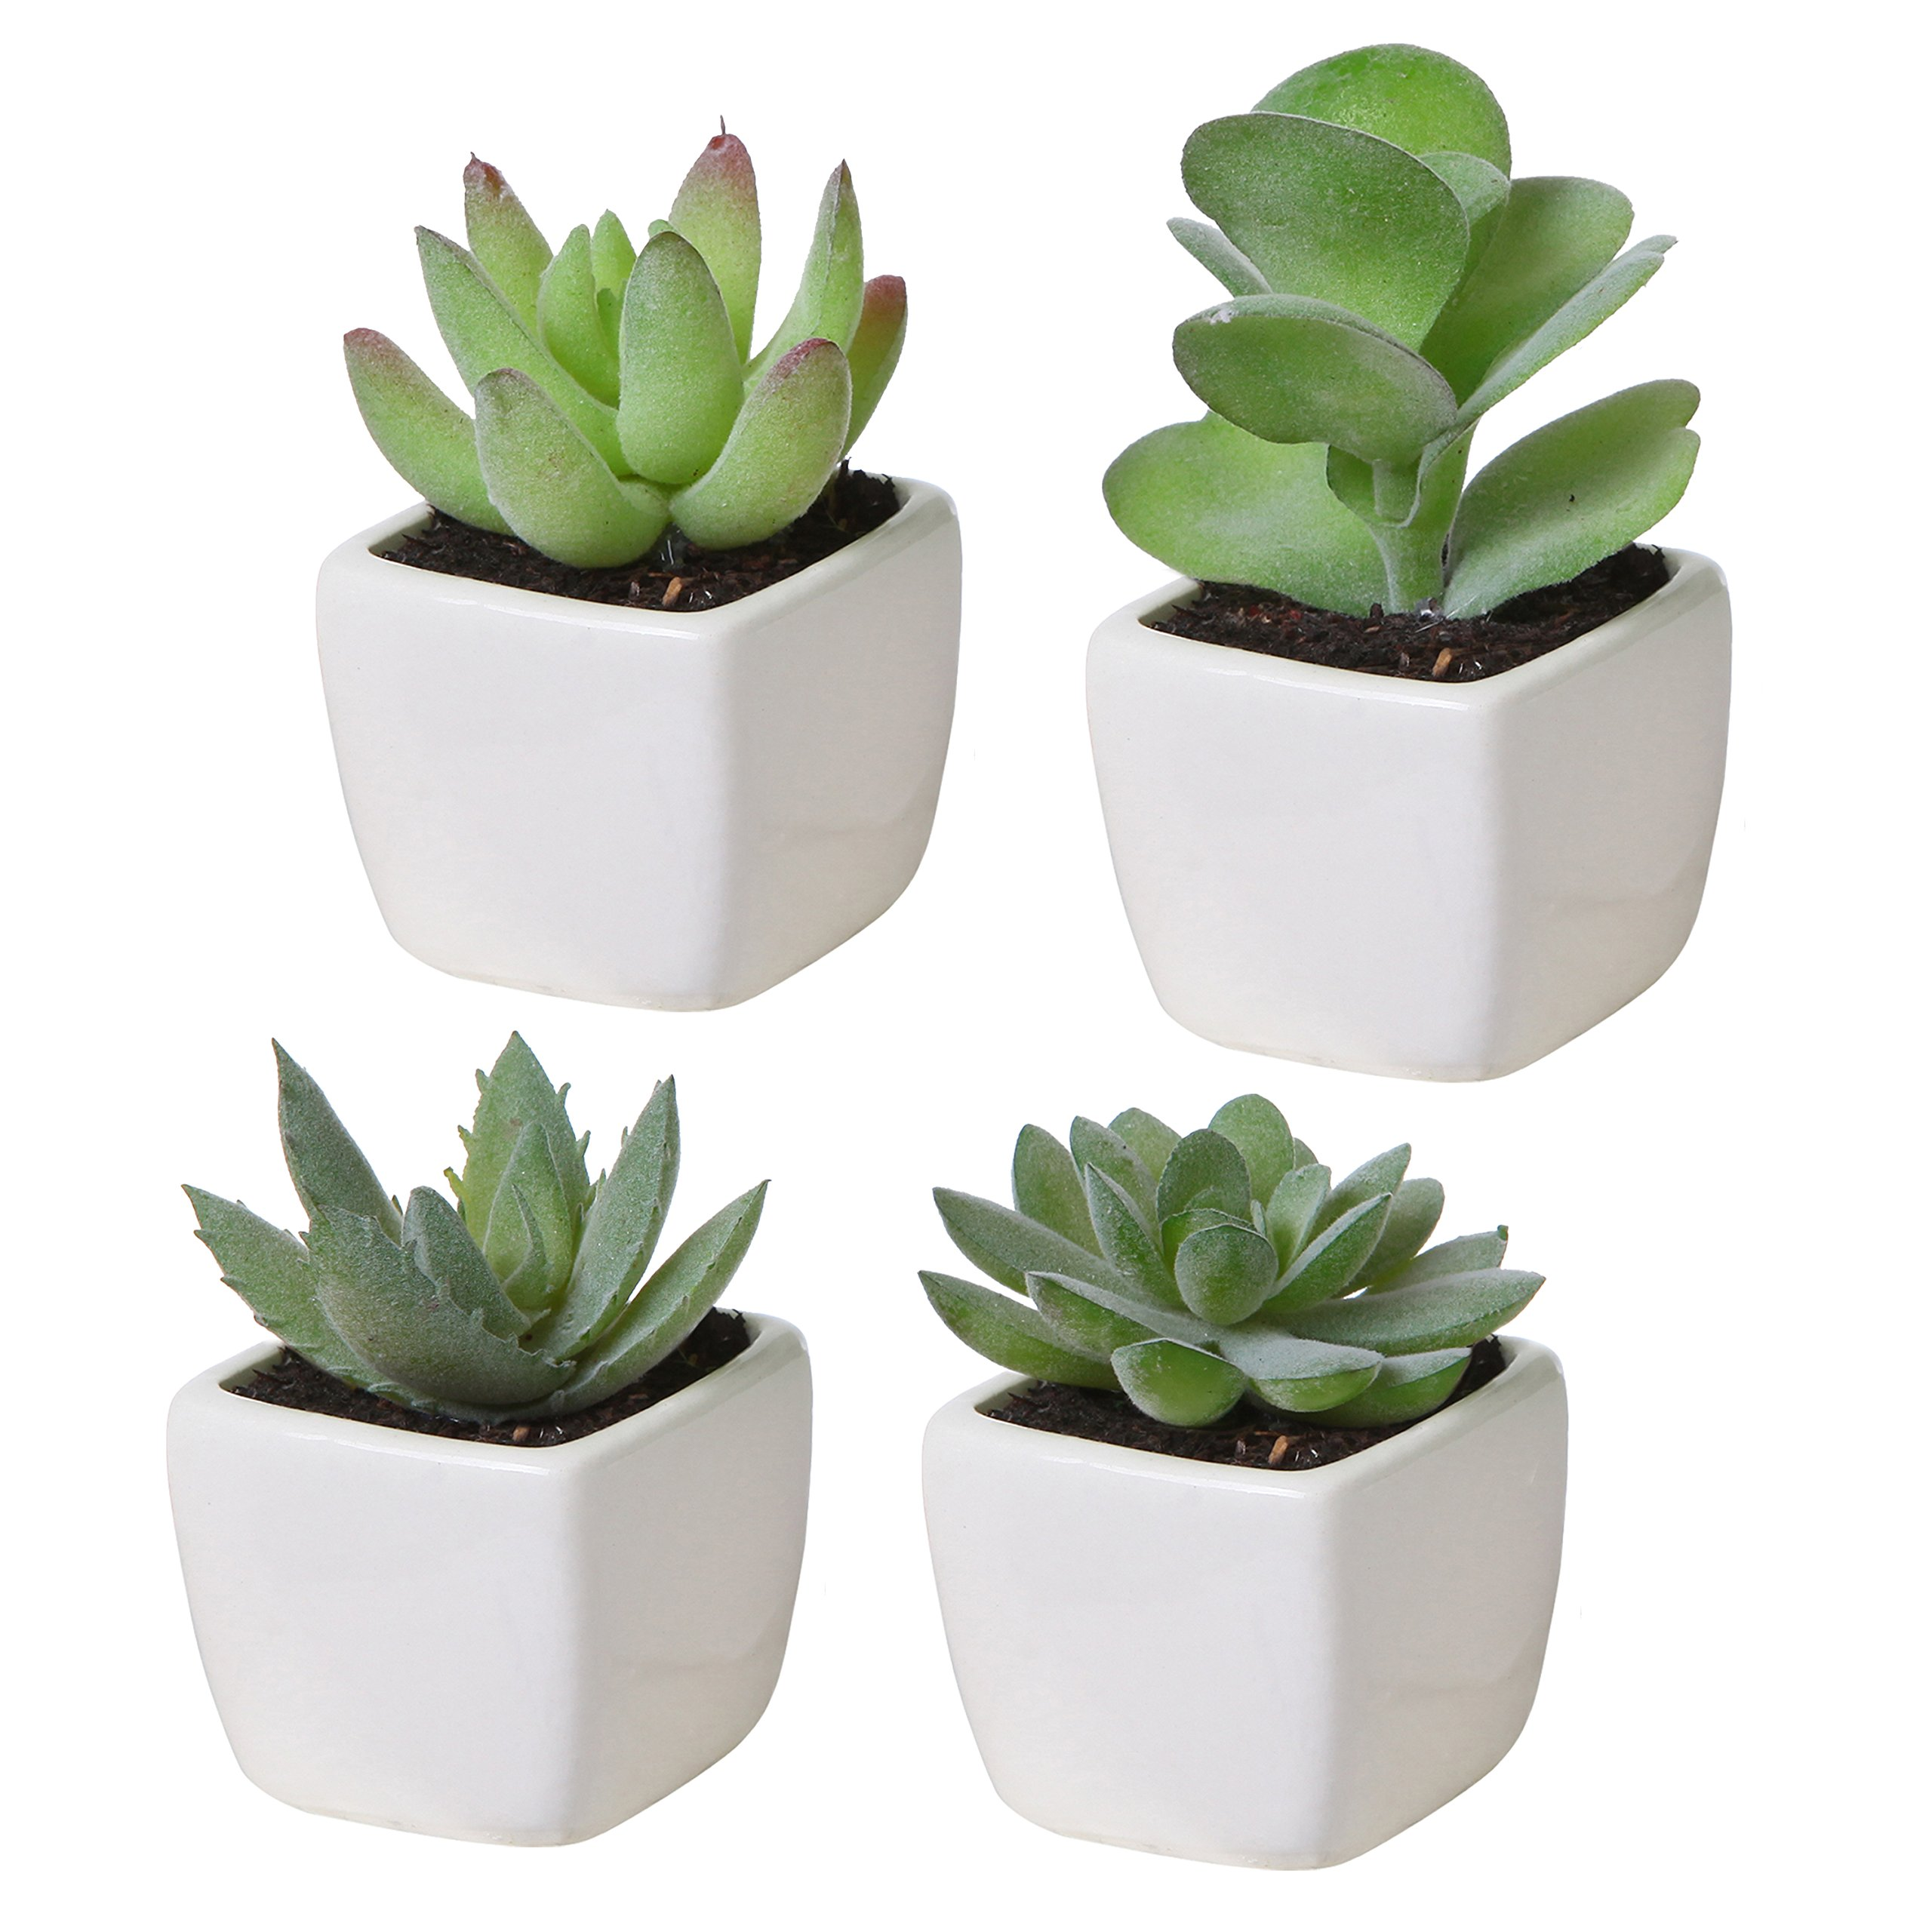 MyGift Set of 4 Mini Assorted Green Artificial Succulent Plants in Square White Ceramic Planters